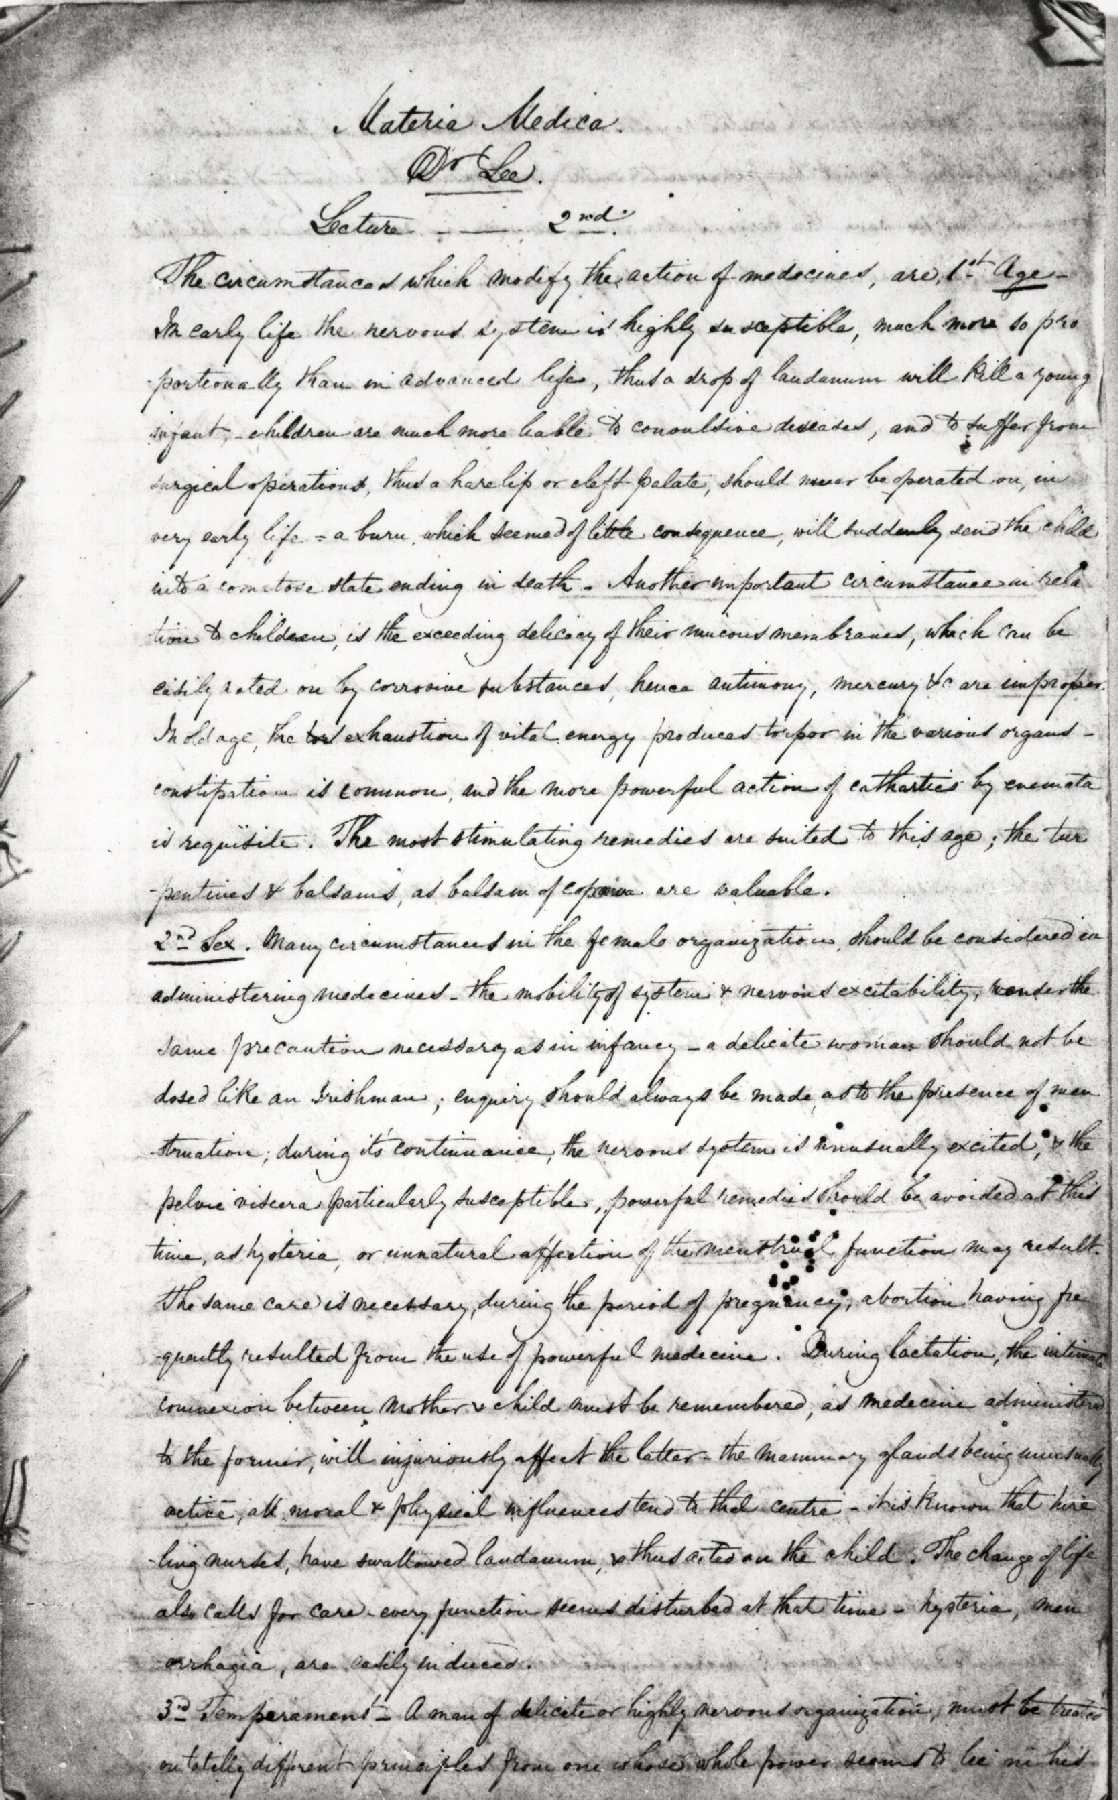 elizabeth blackwell hero essay Essay about why you want to be a doctor, city college nyc mfa creative writing, hamlet essays, elizabeth blackwell hero essay created date.